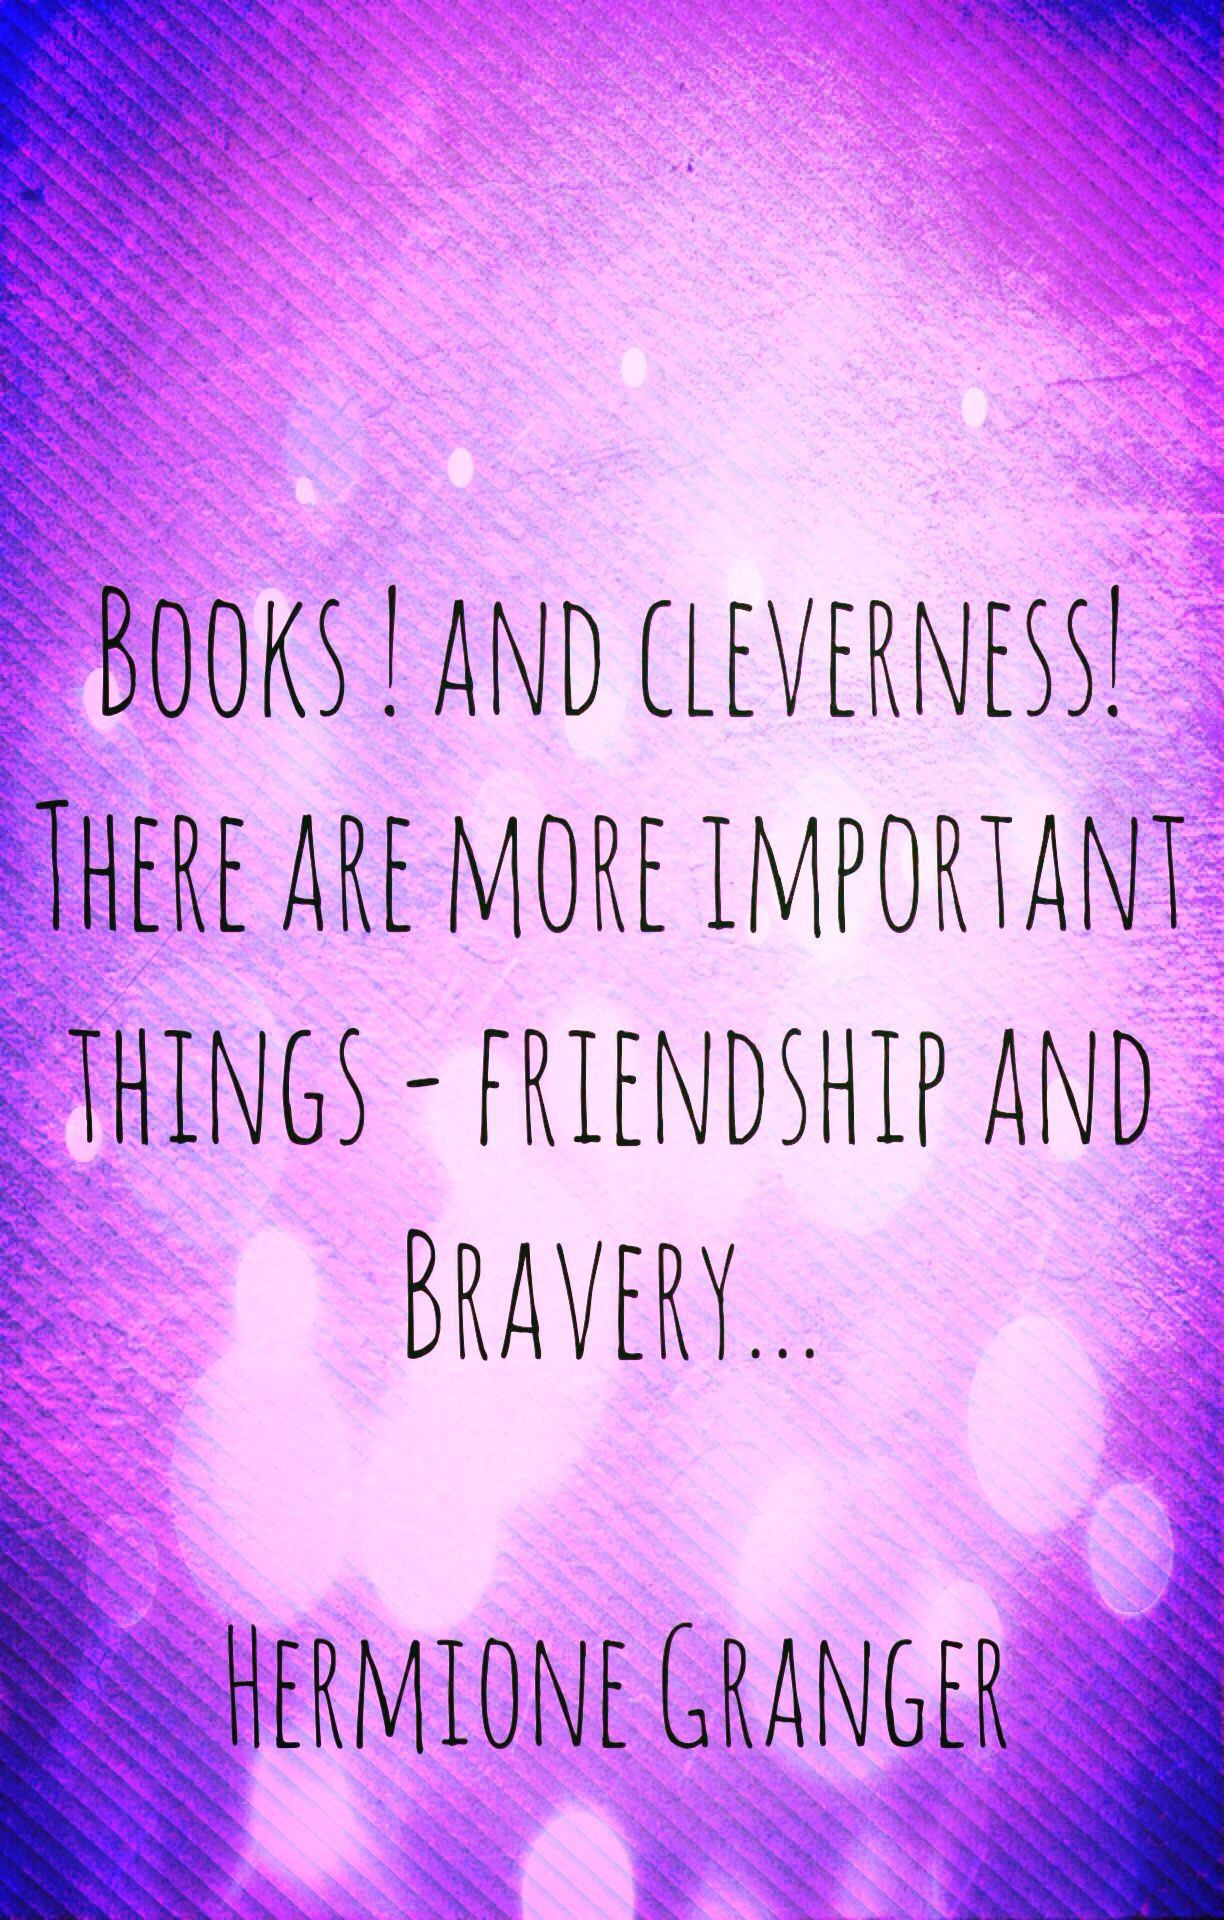 Harry Potter Book Quotes And Page Numbers ~ Hermione granger quotes great pinterest